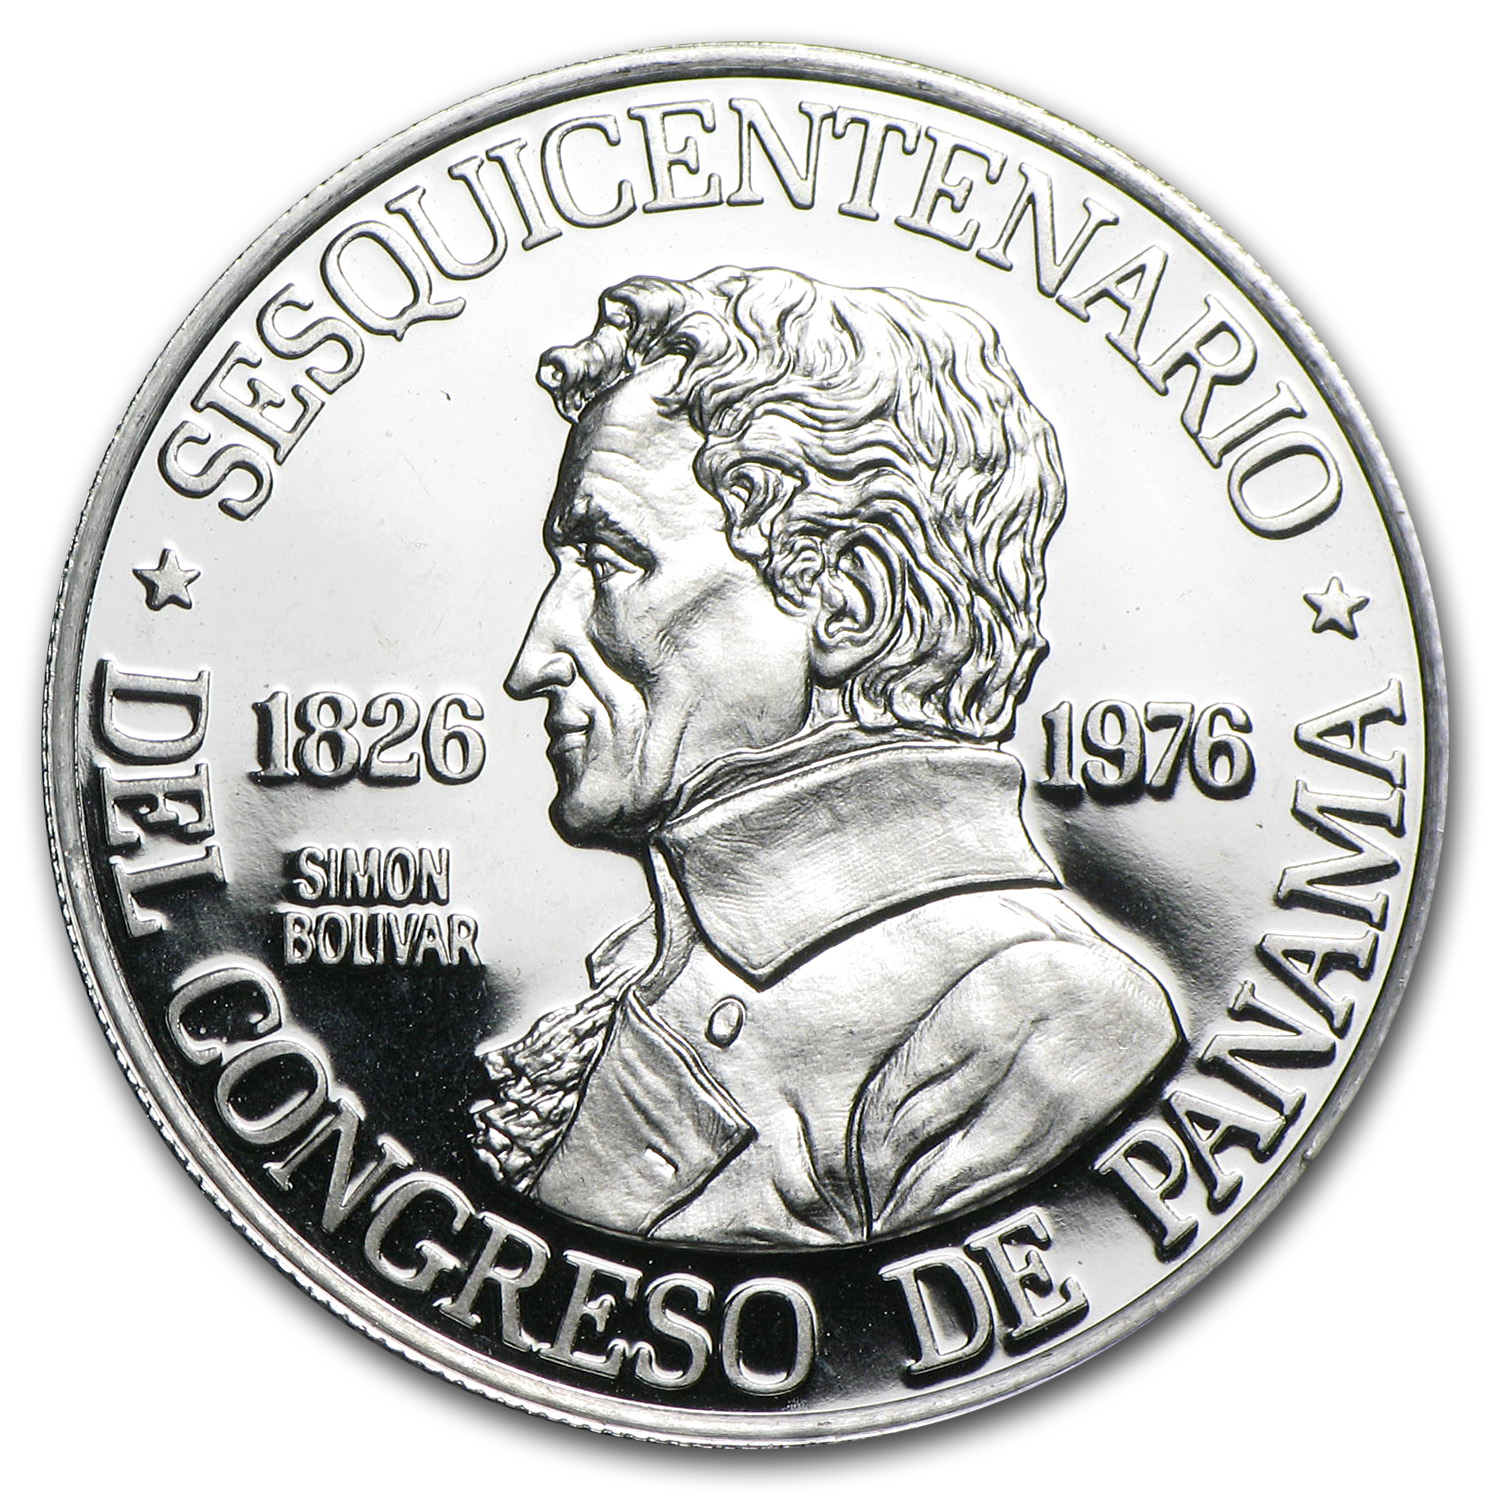 1976 Platinum Panama 150 Balboas Proof (APW .2987 oz)